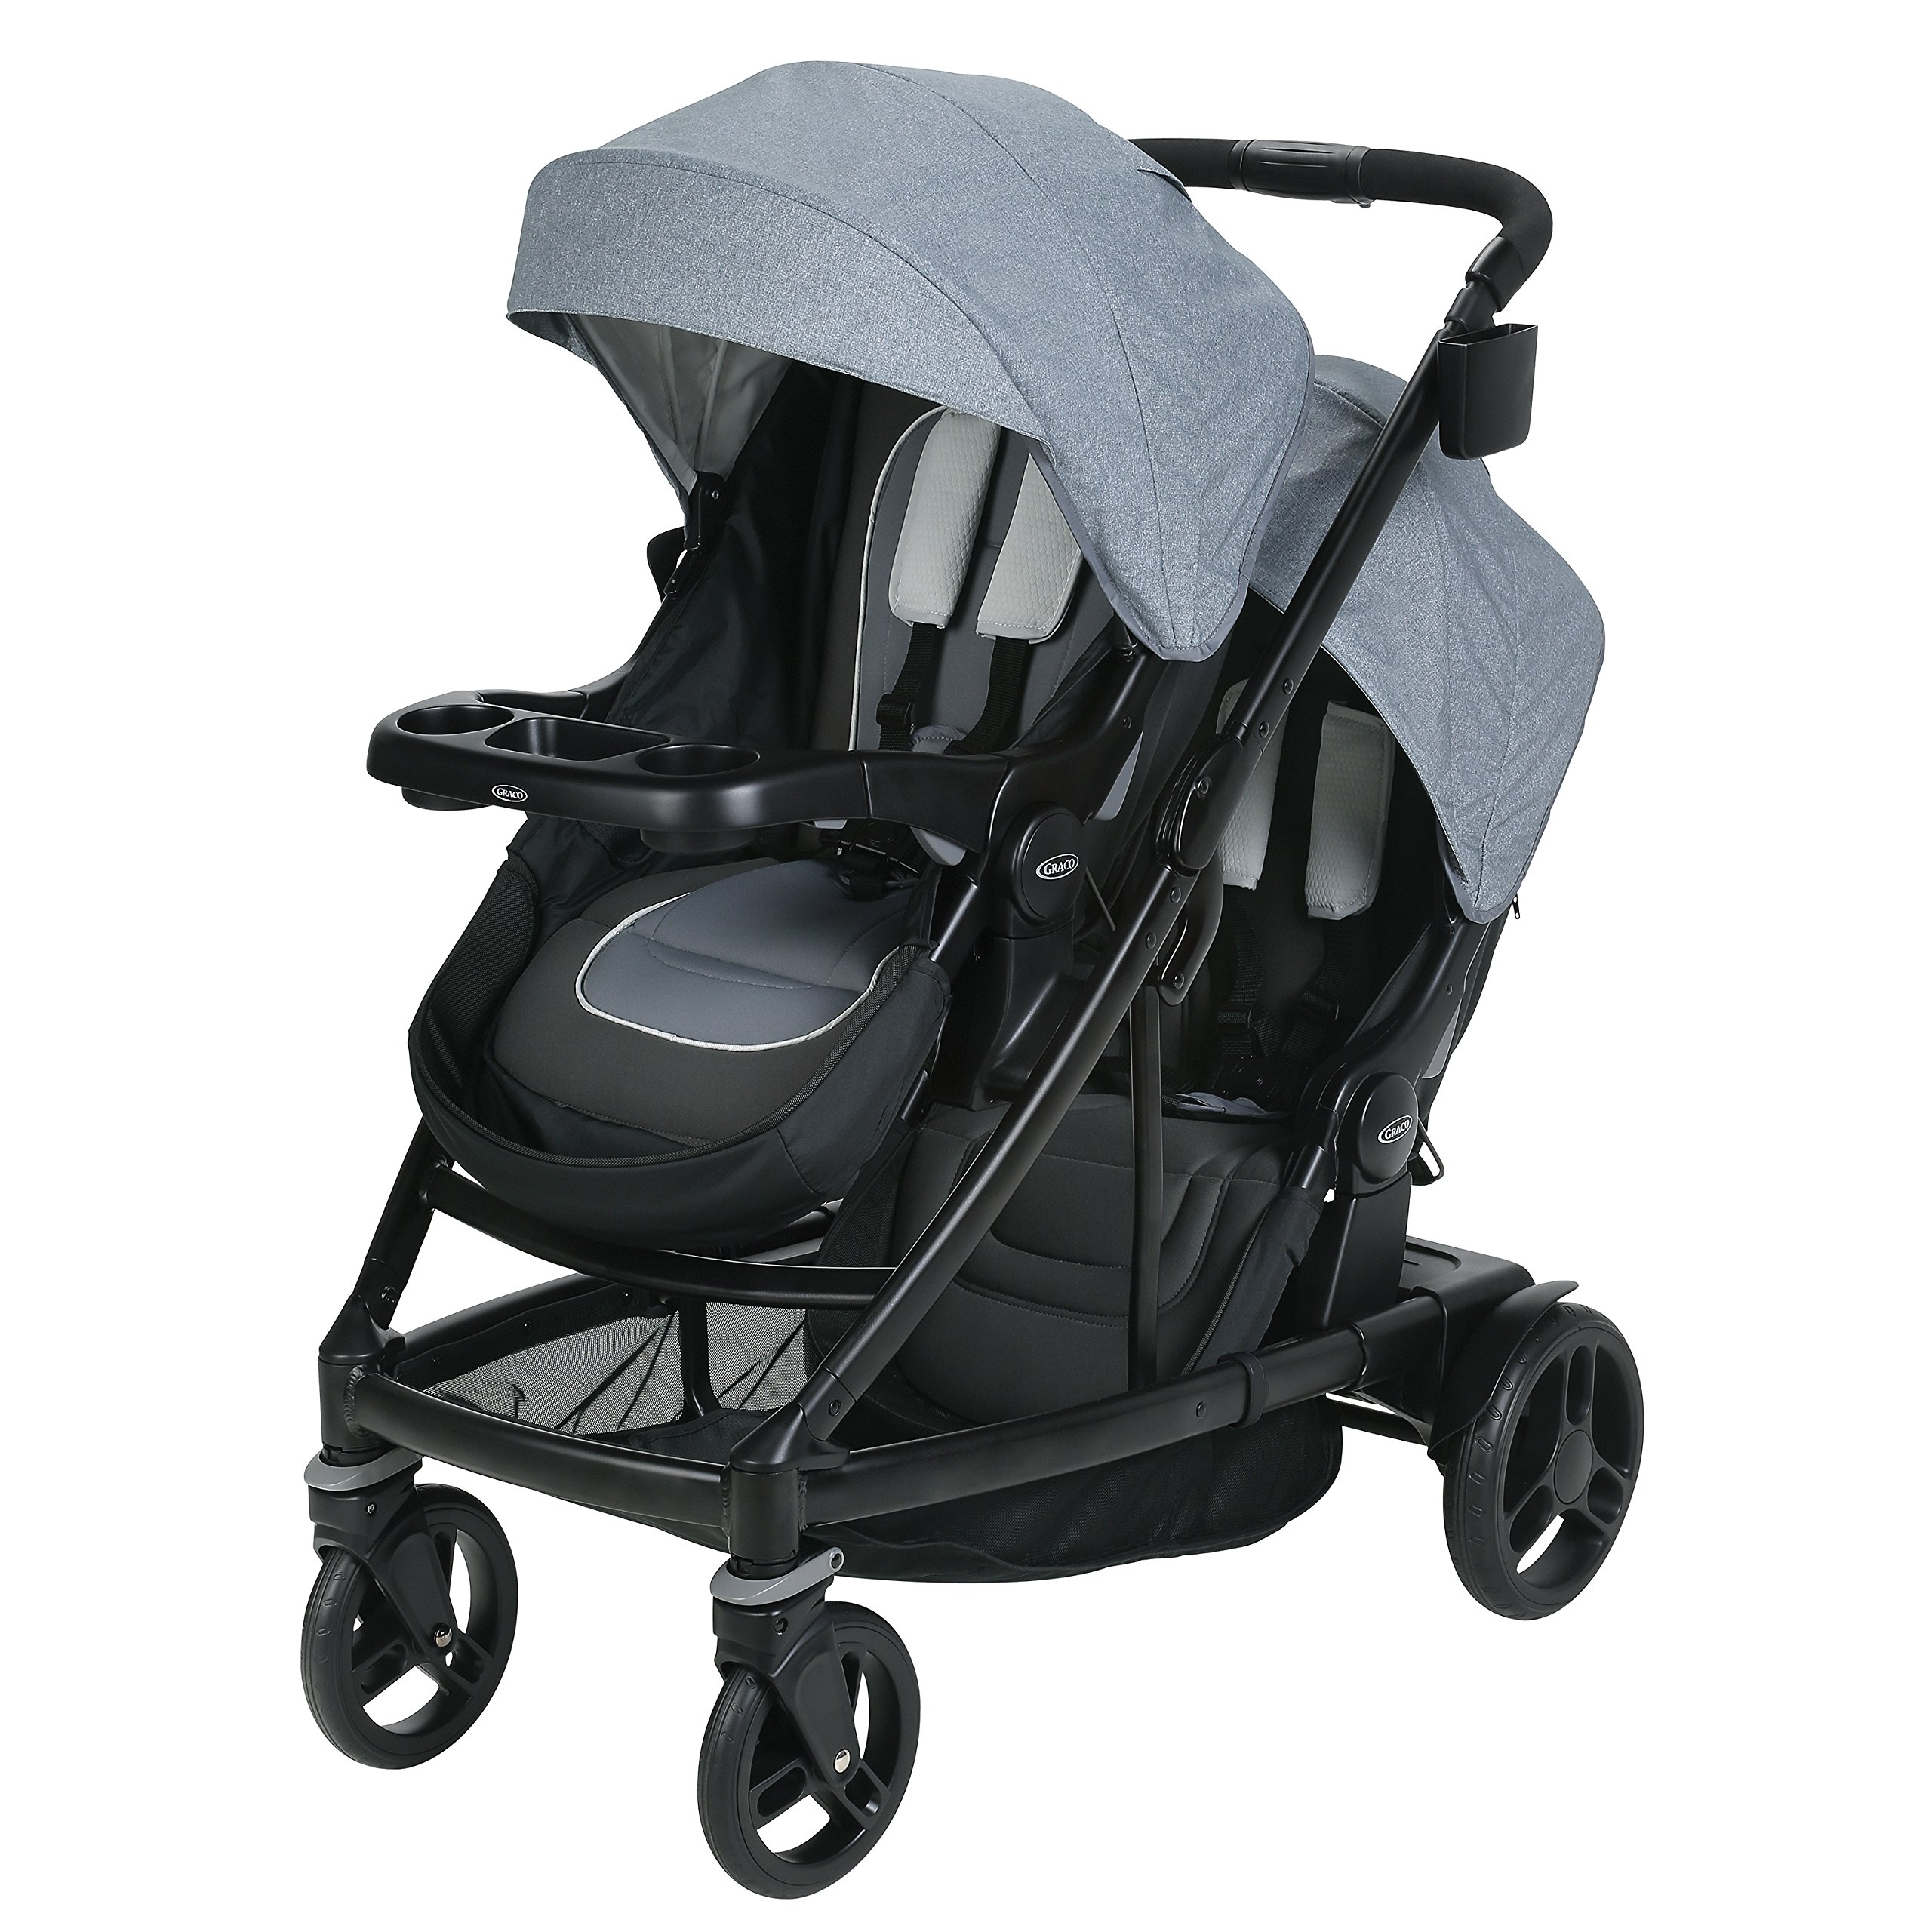 Combi Double Stroller Side By Side Cheap Combi Double Stroller Find Combi Double Stroller